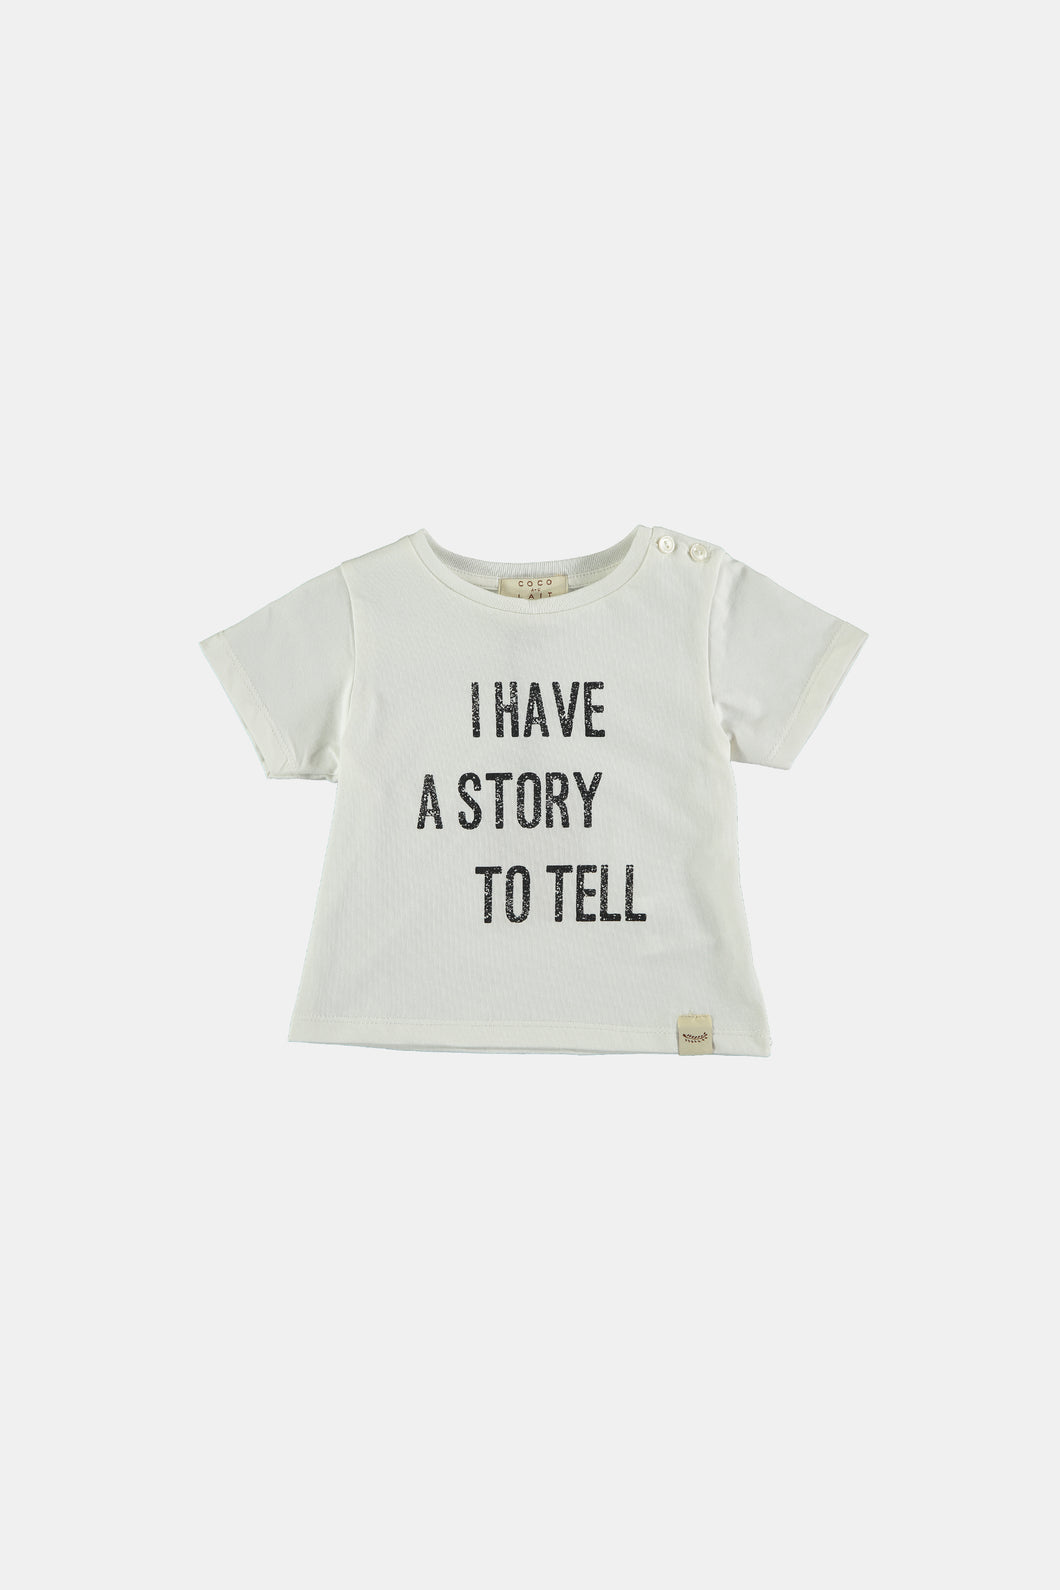 Coco Au Lait I Have A Story To Tell White Baby T-shirt T-Shirt White